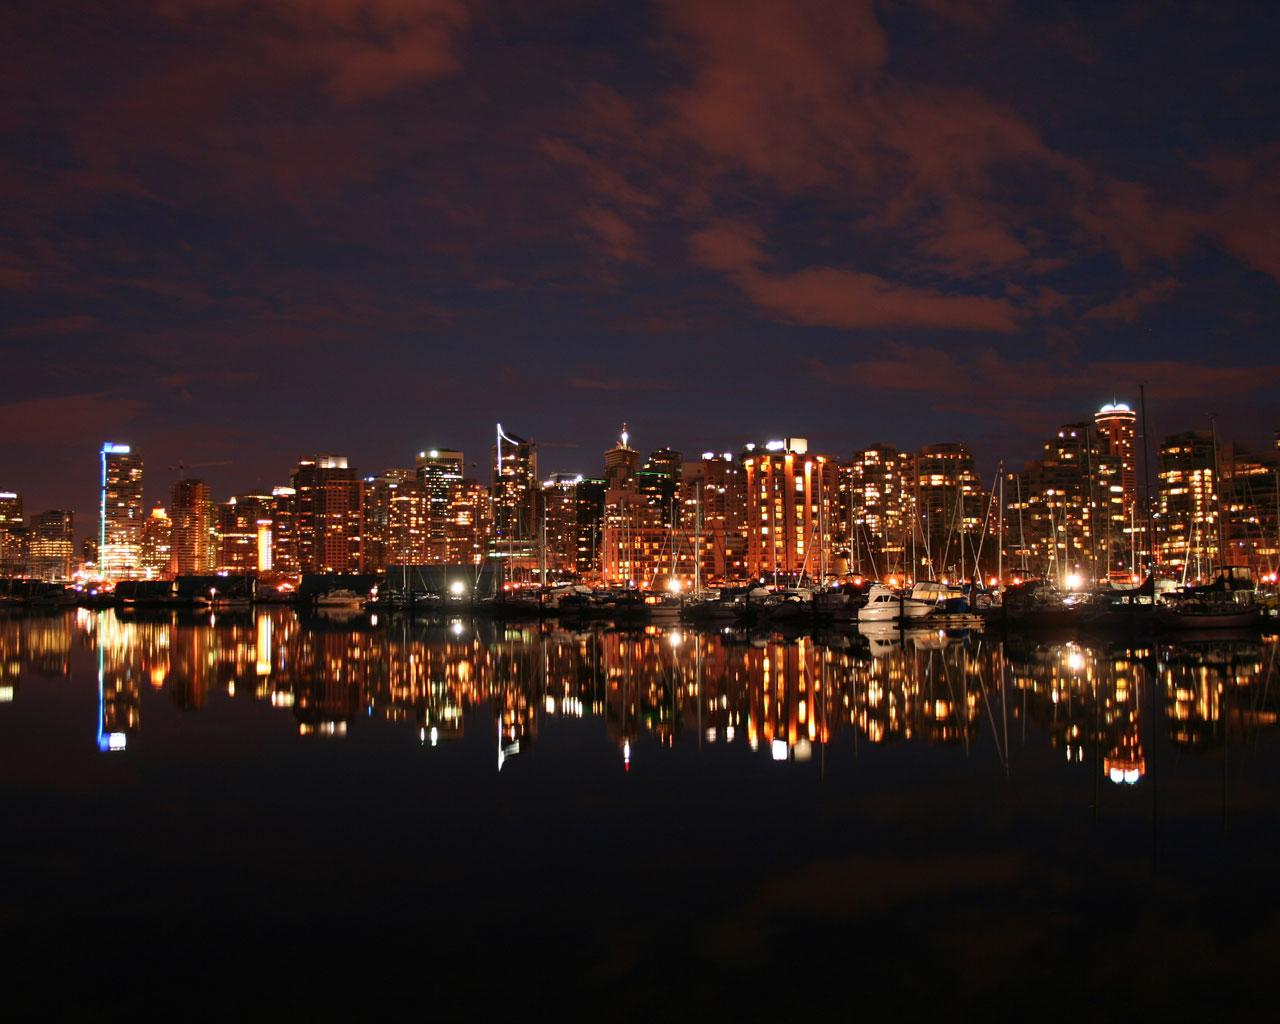 Vancouver   Night Skyline from Stanley Park 1280x1024 Wallpaper 1 1280x1024